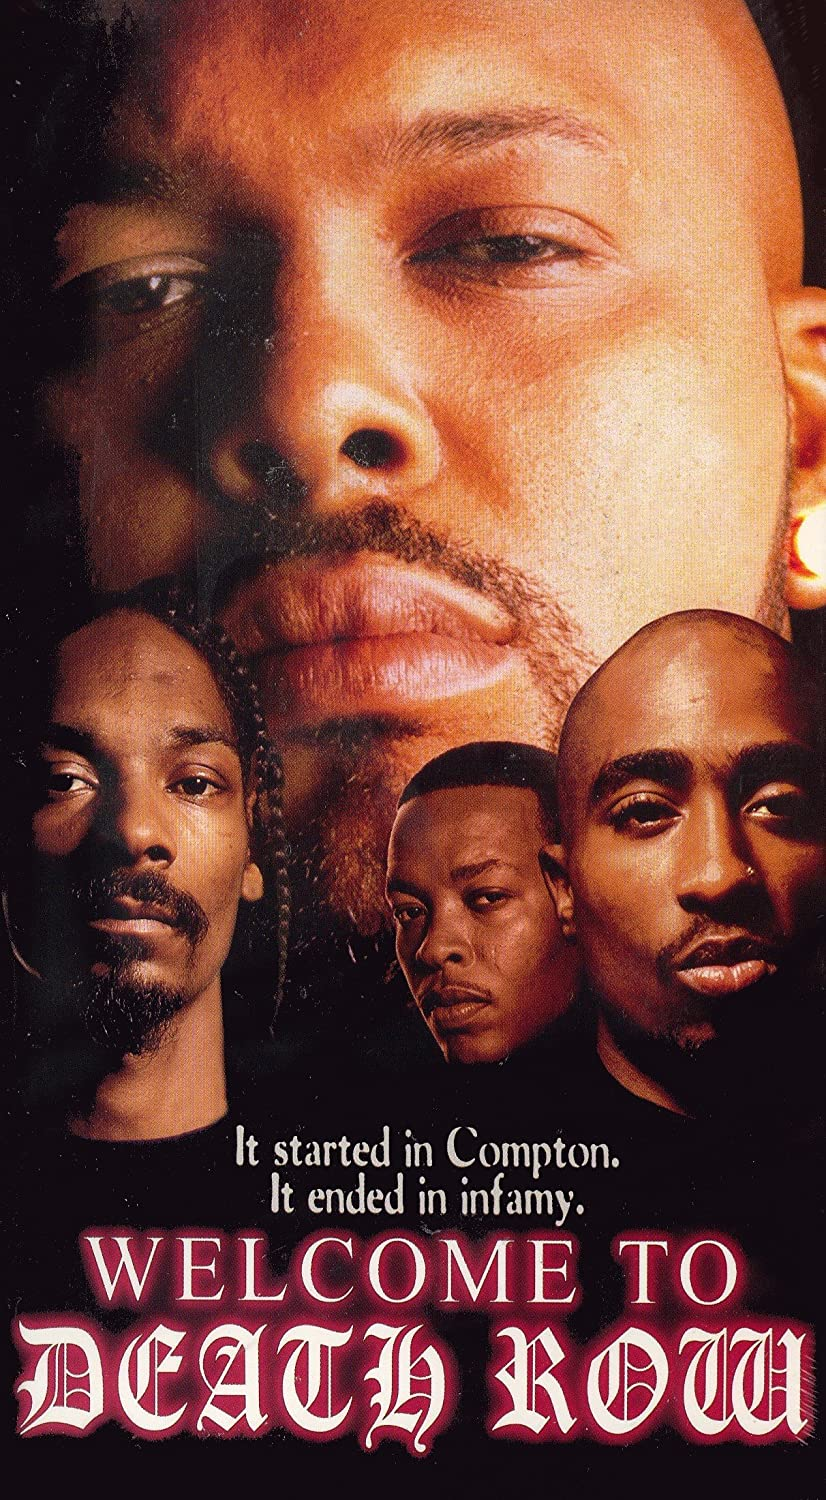 Welcome to Death Row [VHS]